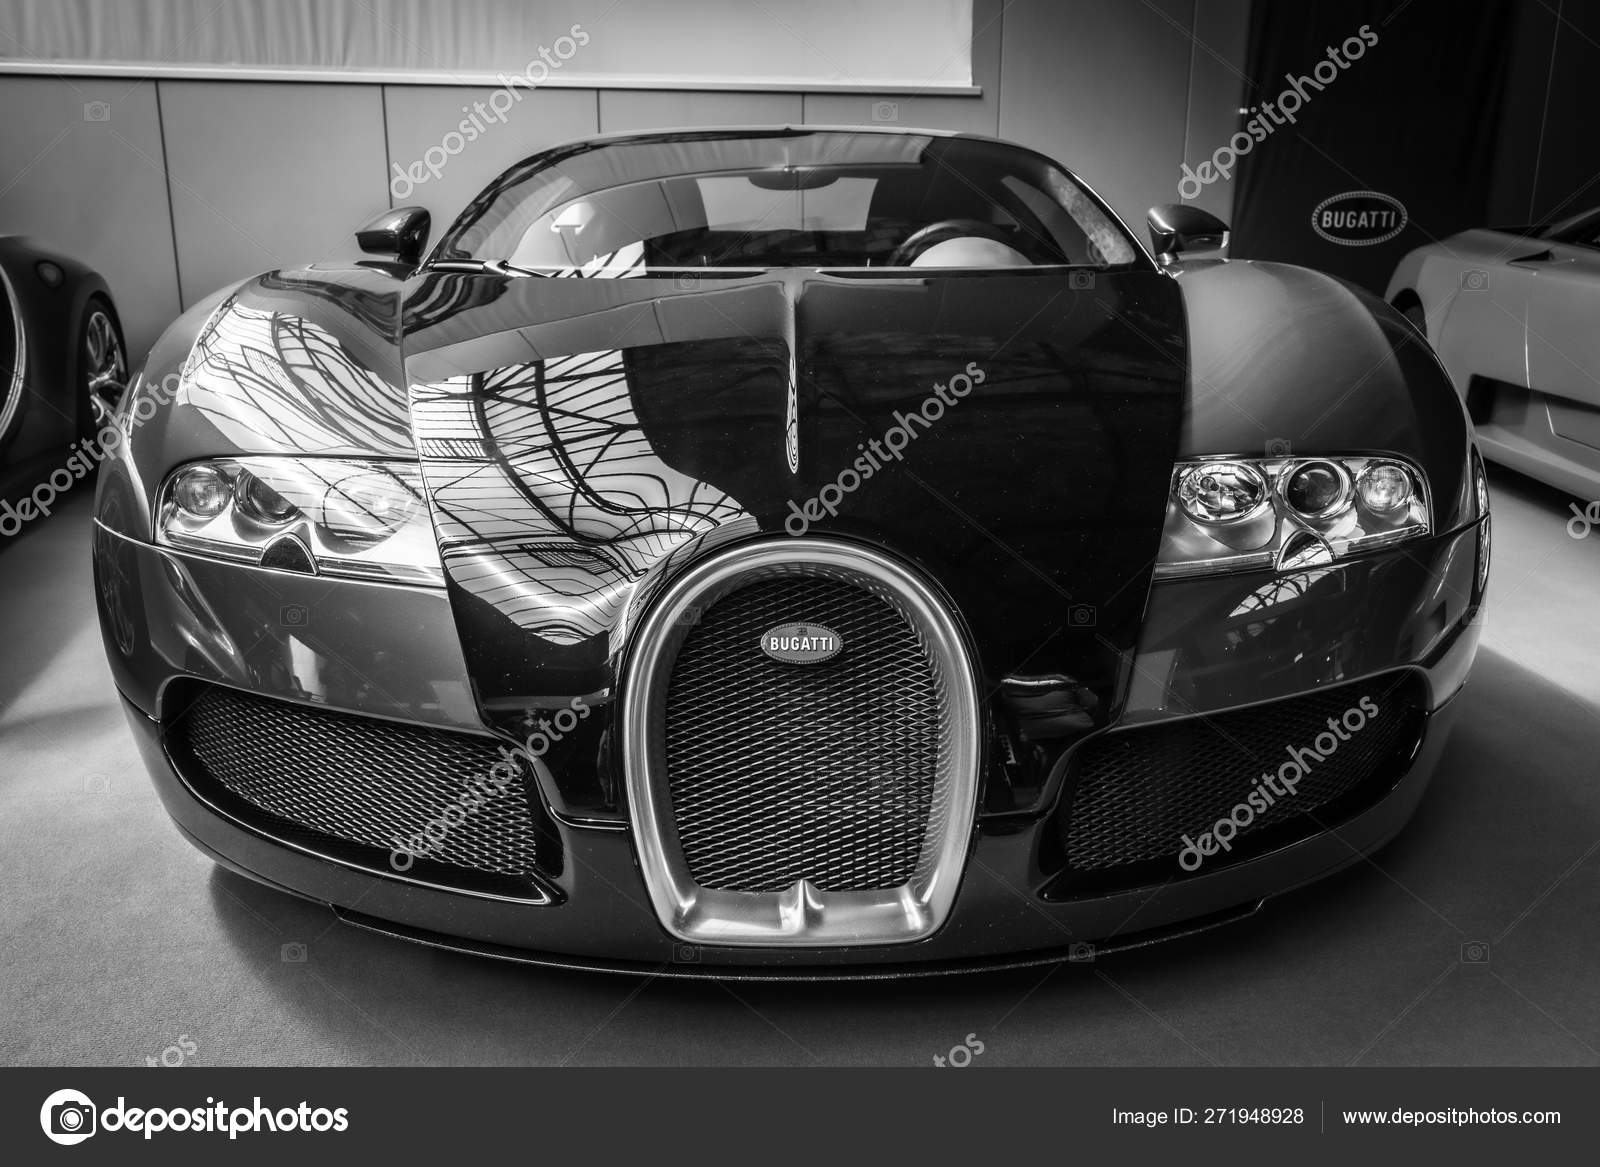 Berlin May 2019 Sports Car Bugatti Veyron Black White 32th Stock Editorial Photo C S Kohl 271948928